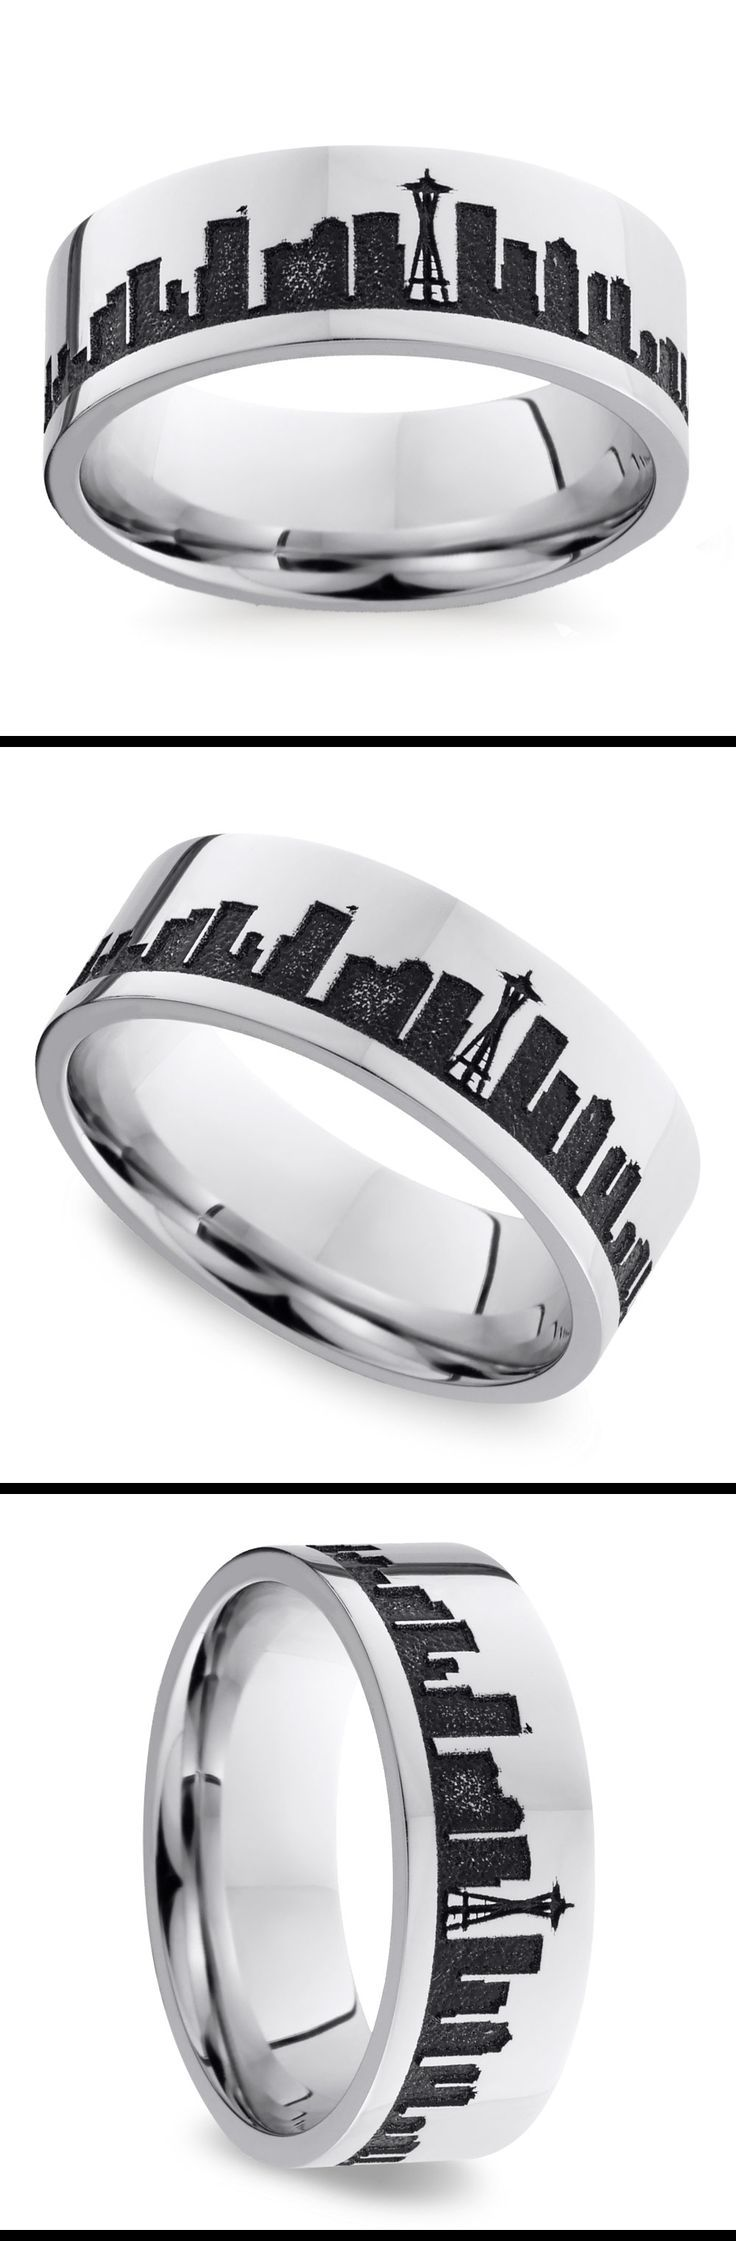 Rock your love of the Emerald City with this 8 mm cobalt men's wedding band featuring the Seattle skyline.